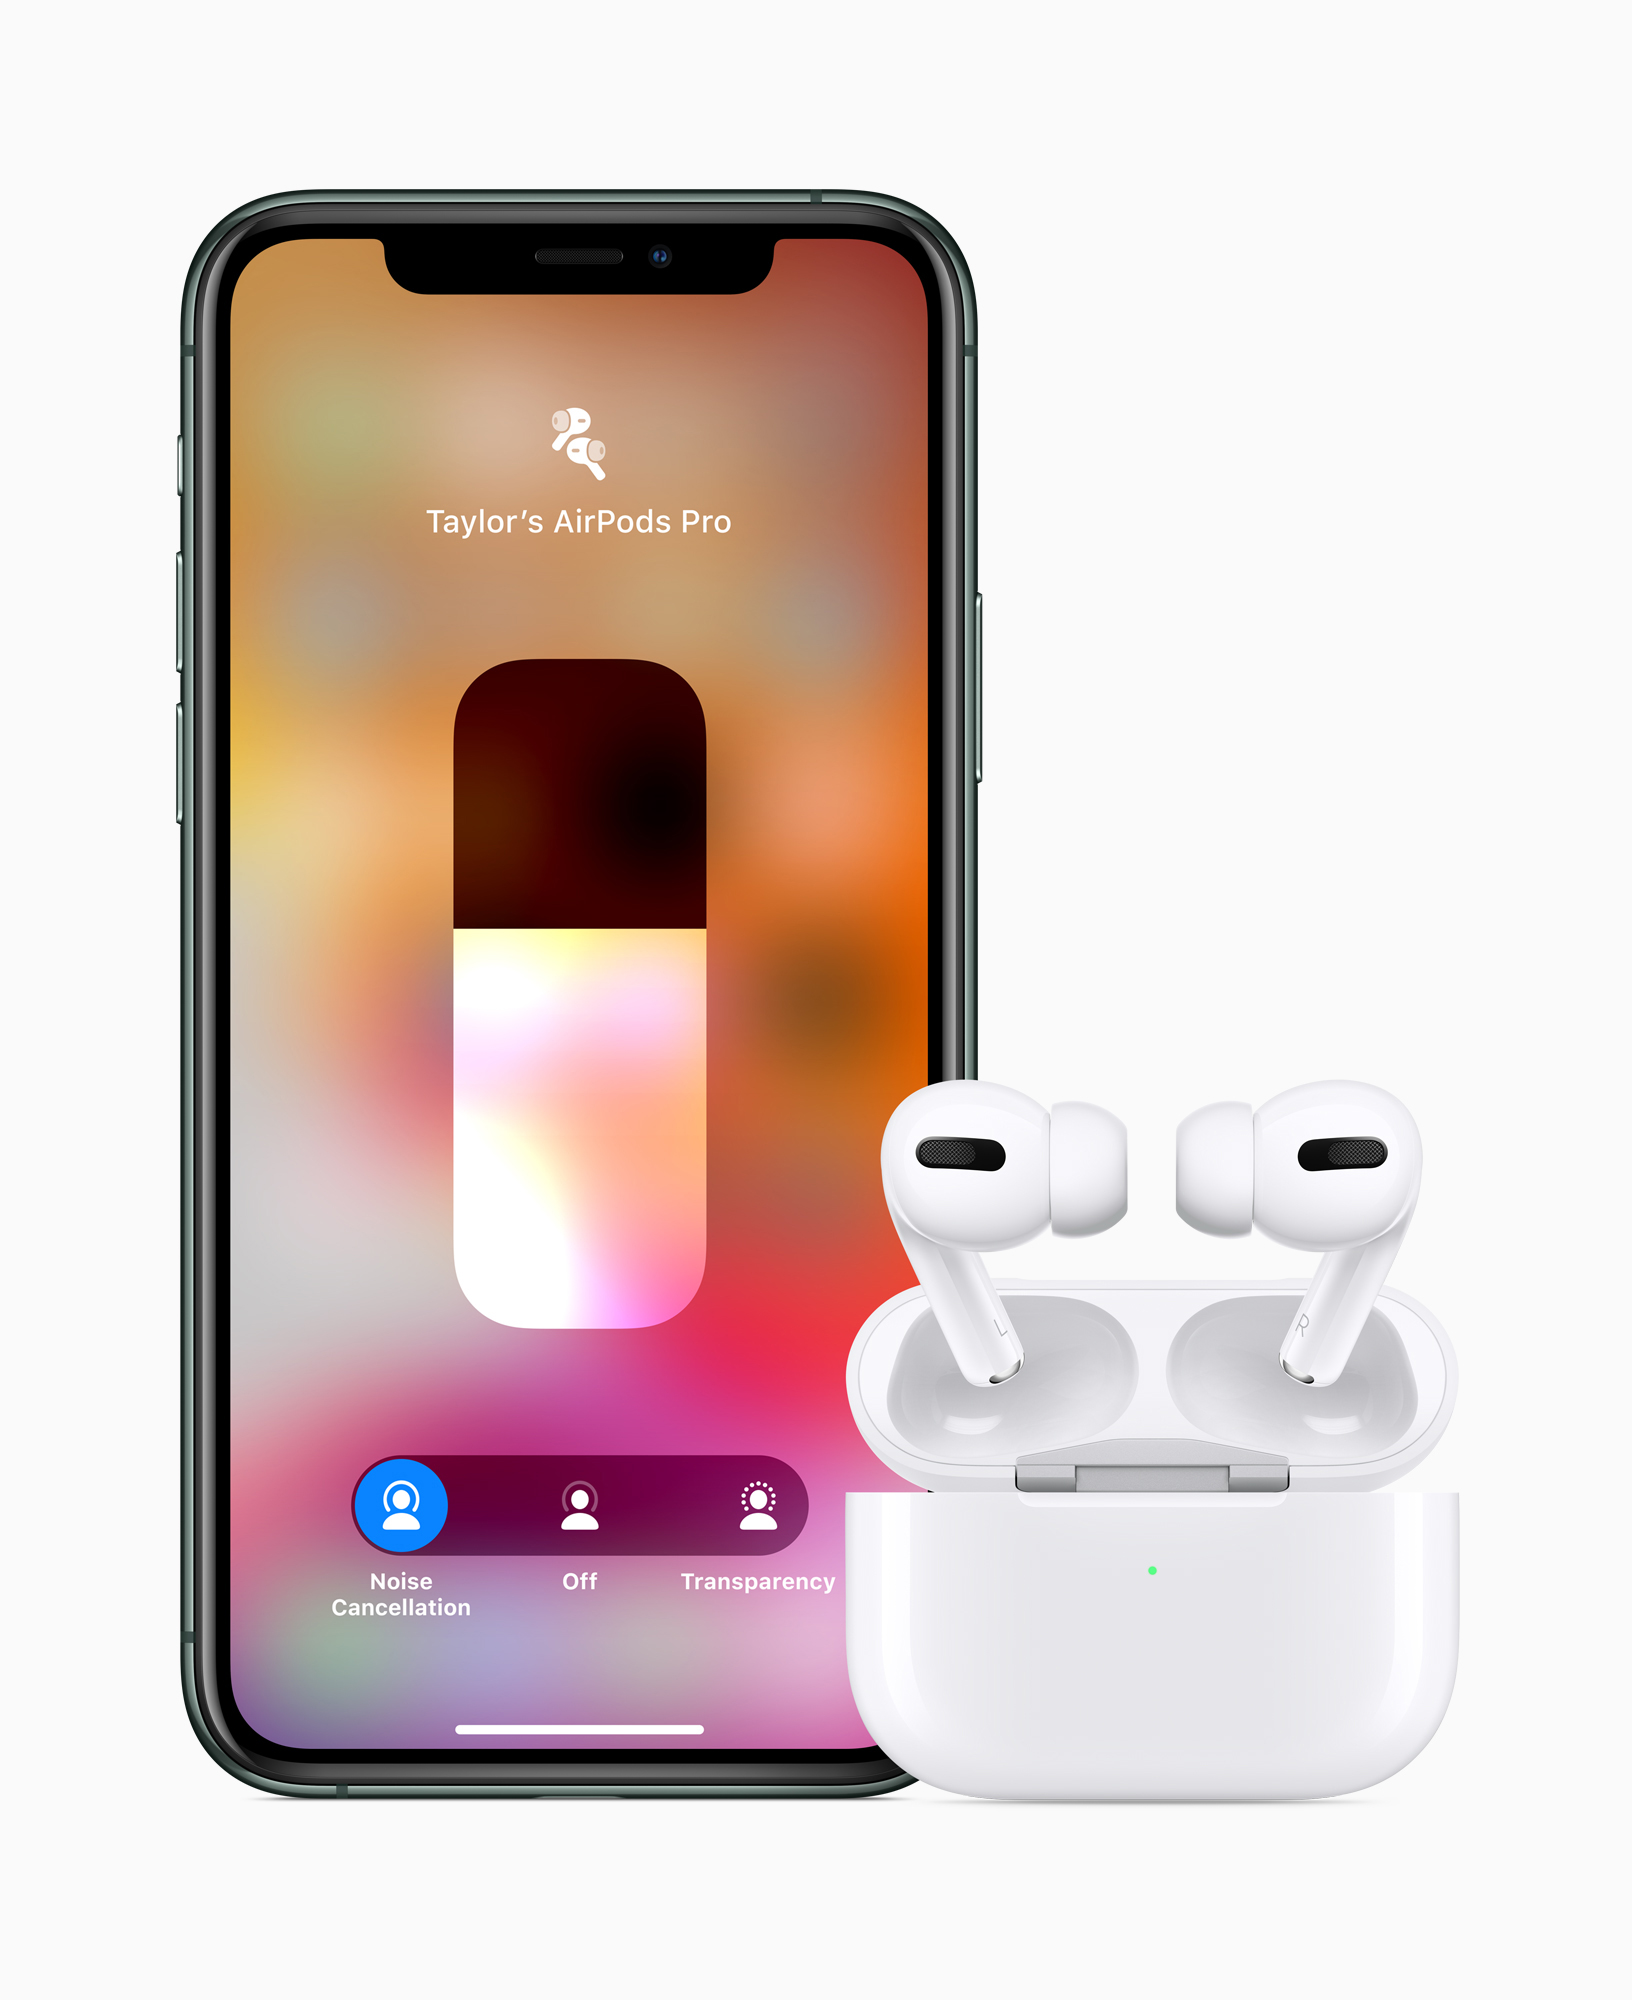 2021 iPhone SE, New AirPods Pro Could Arrive in April